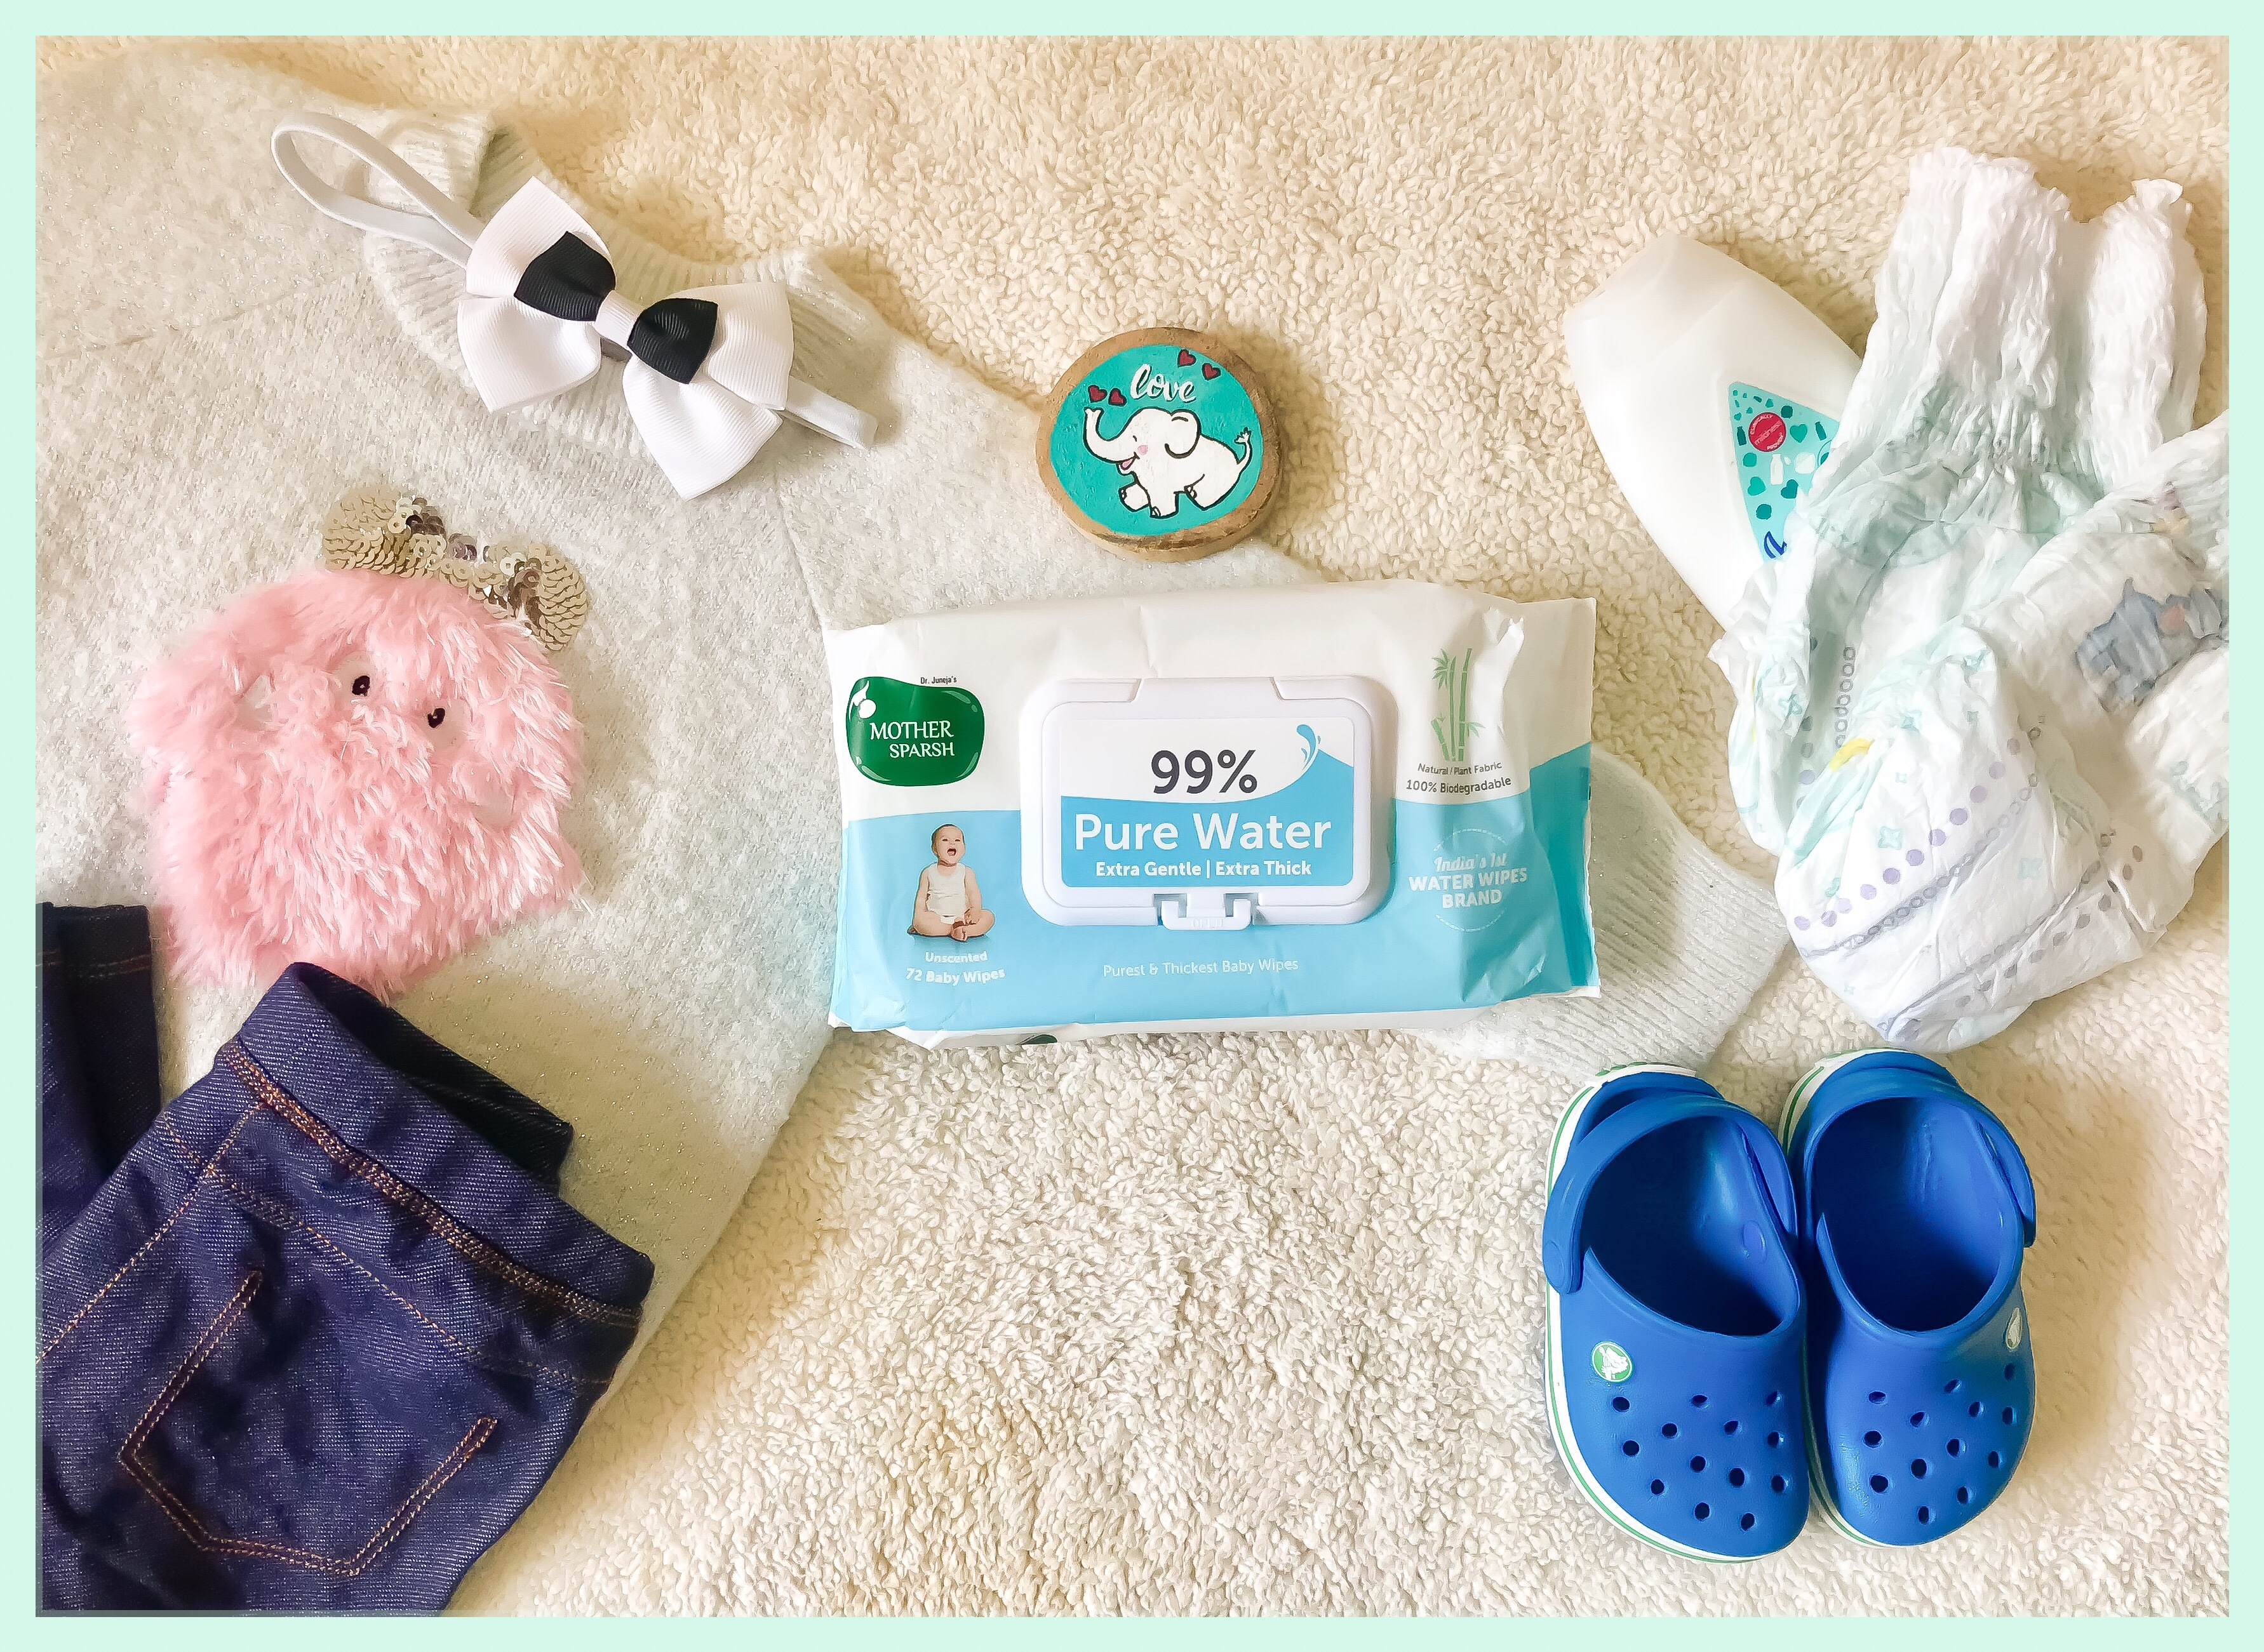 Mother Sparsh mothersparsh wet wipes baby wipes